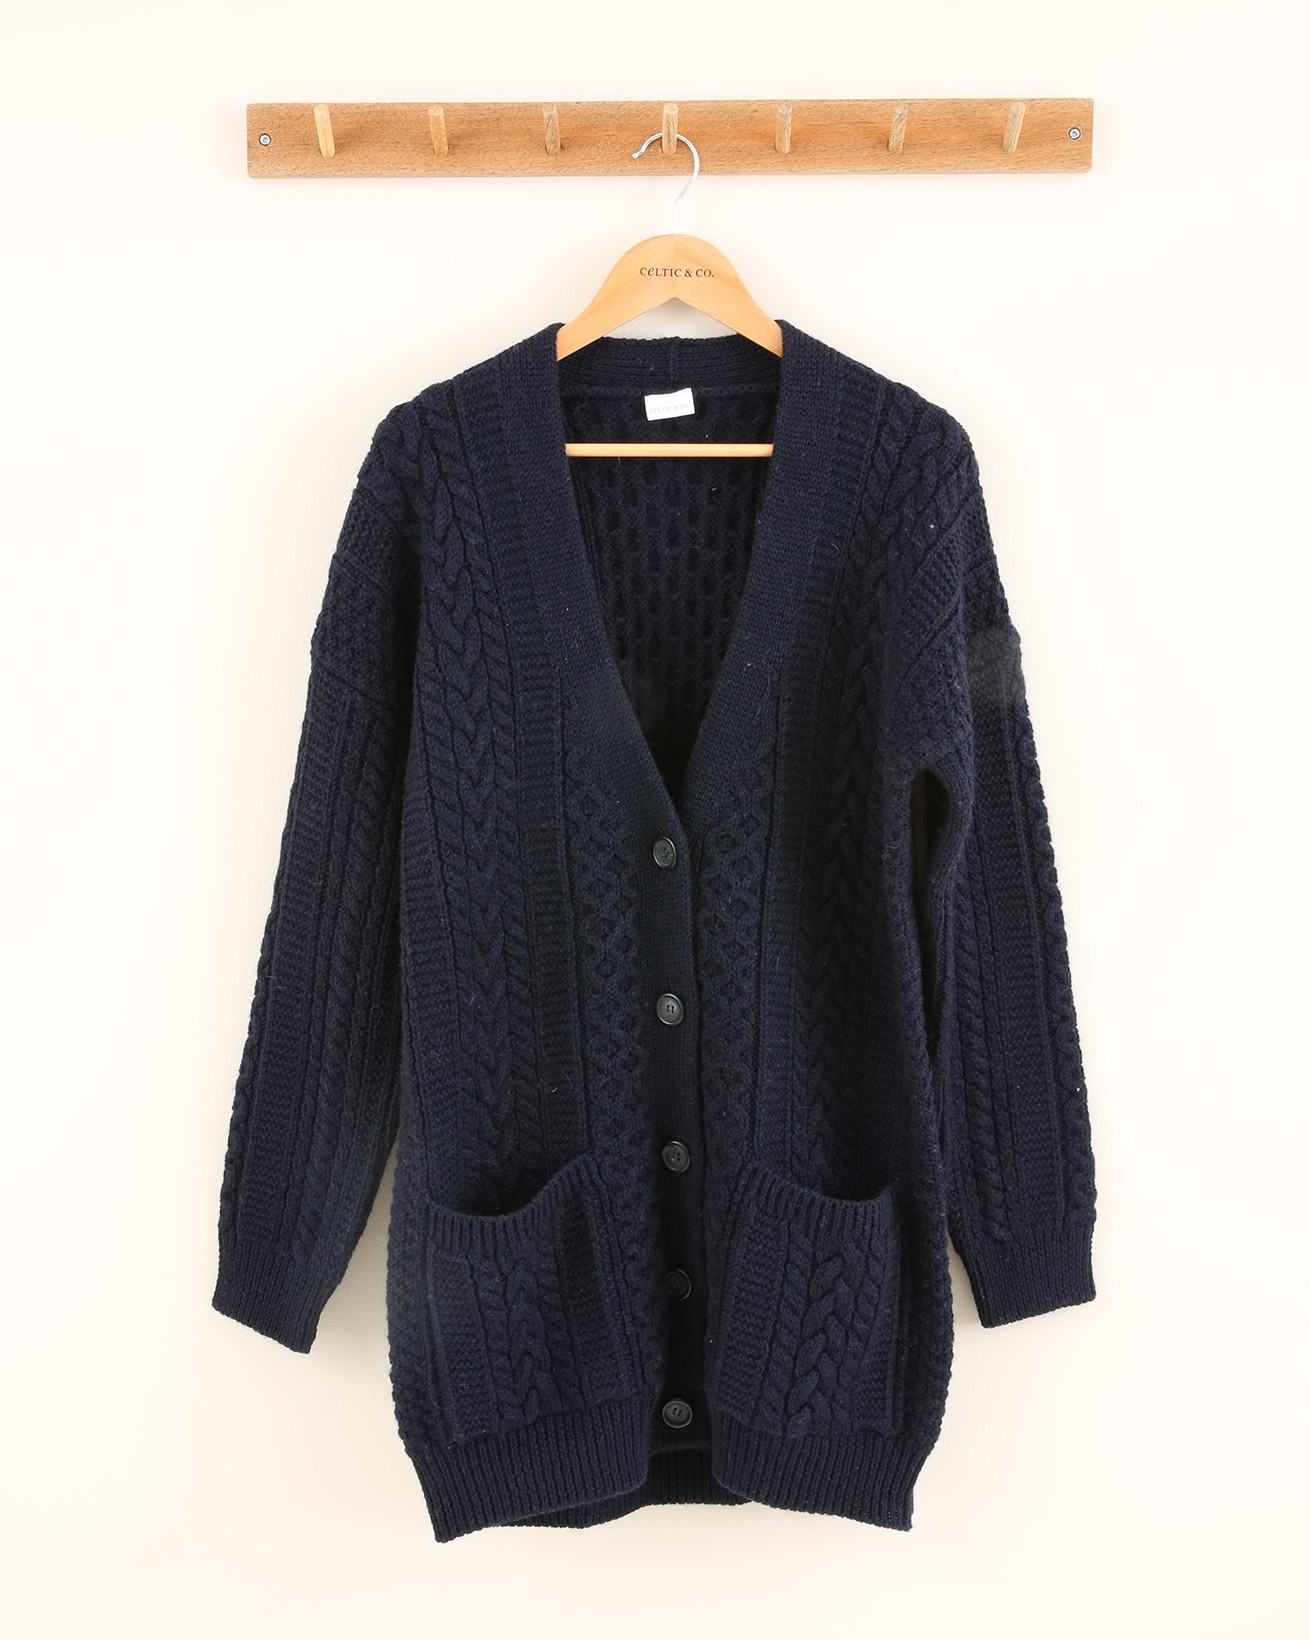 Cable Boyfriend Cardigan - Size Small - Navy - 1911